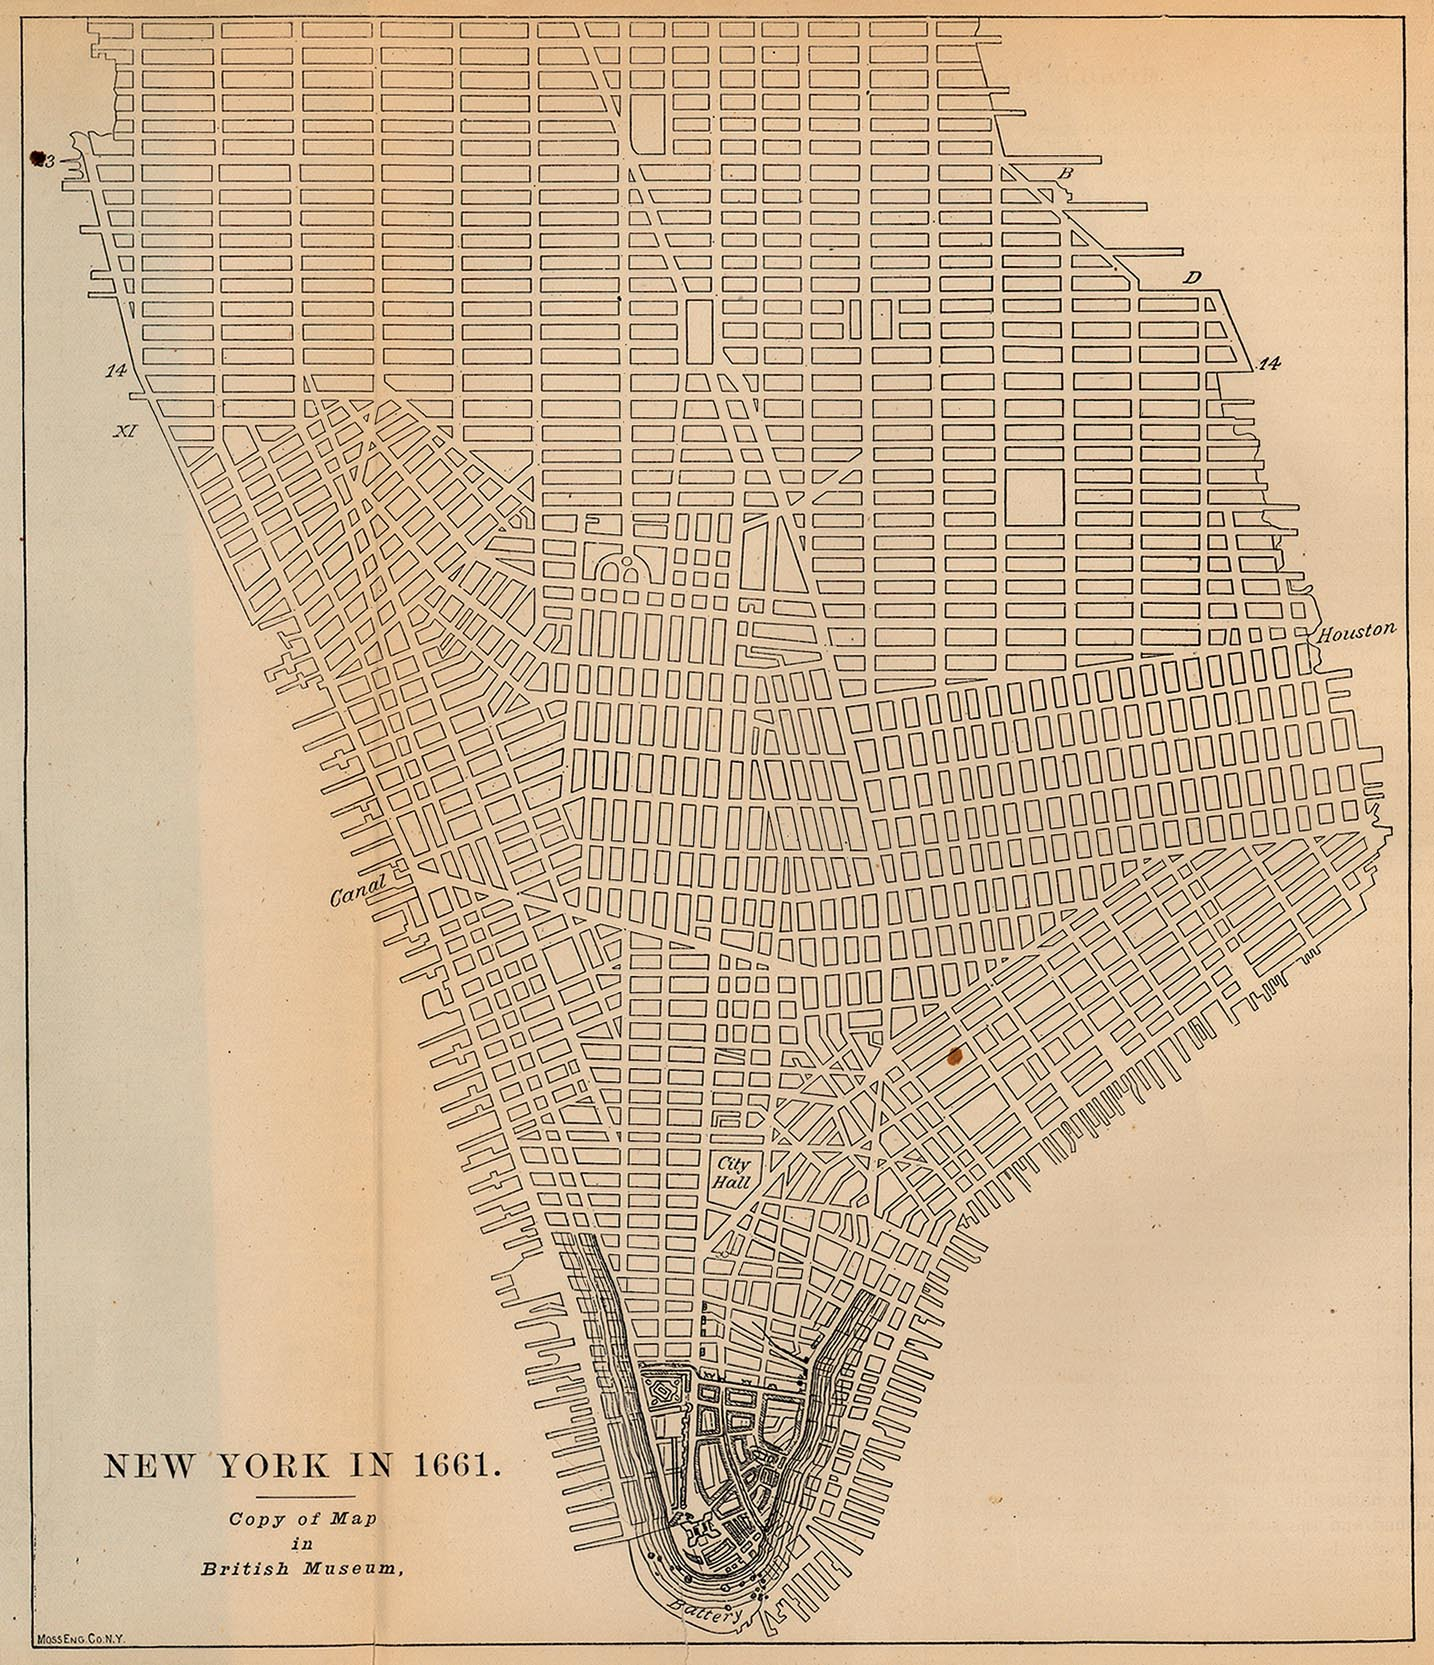 New York Map 1800.New York Maps Perry Castaneda Map Collection Ut Library Online